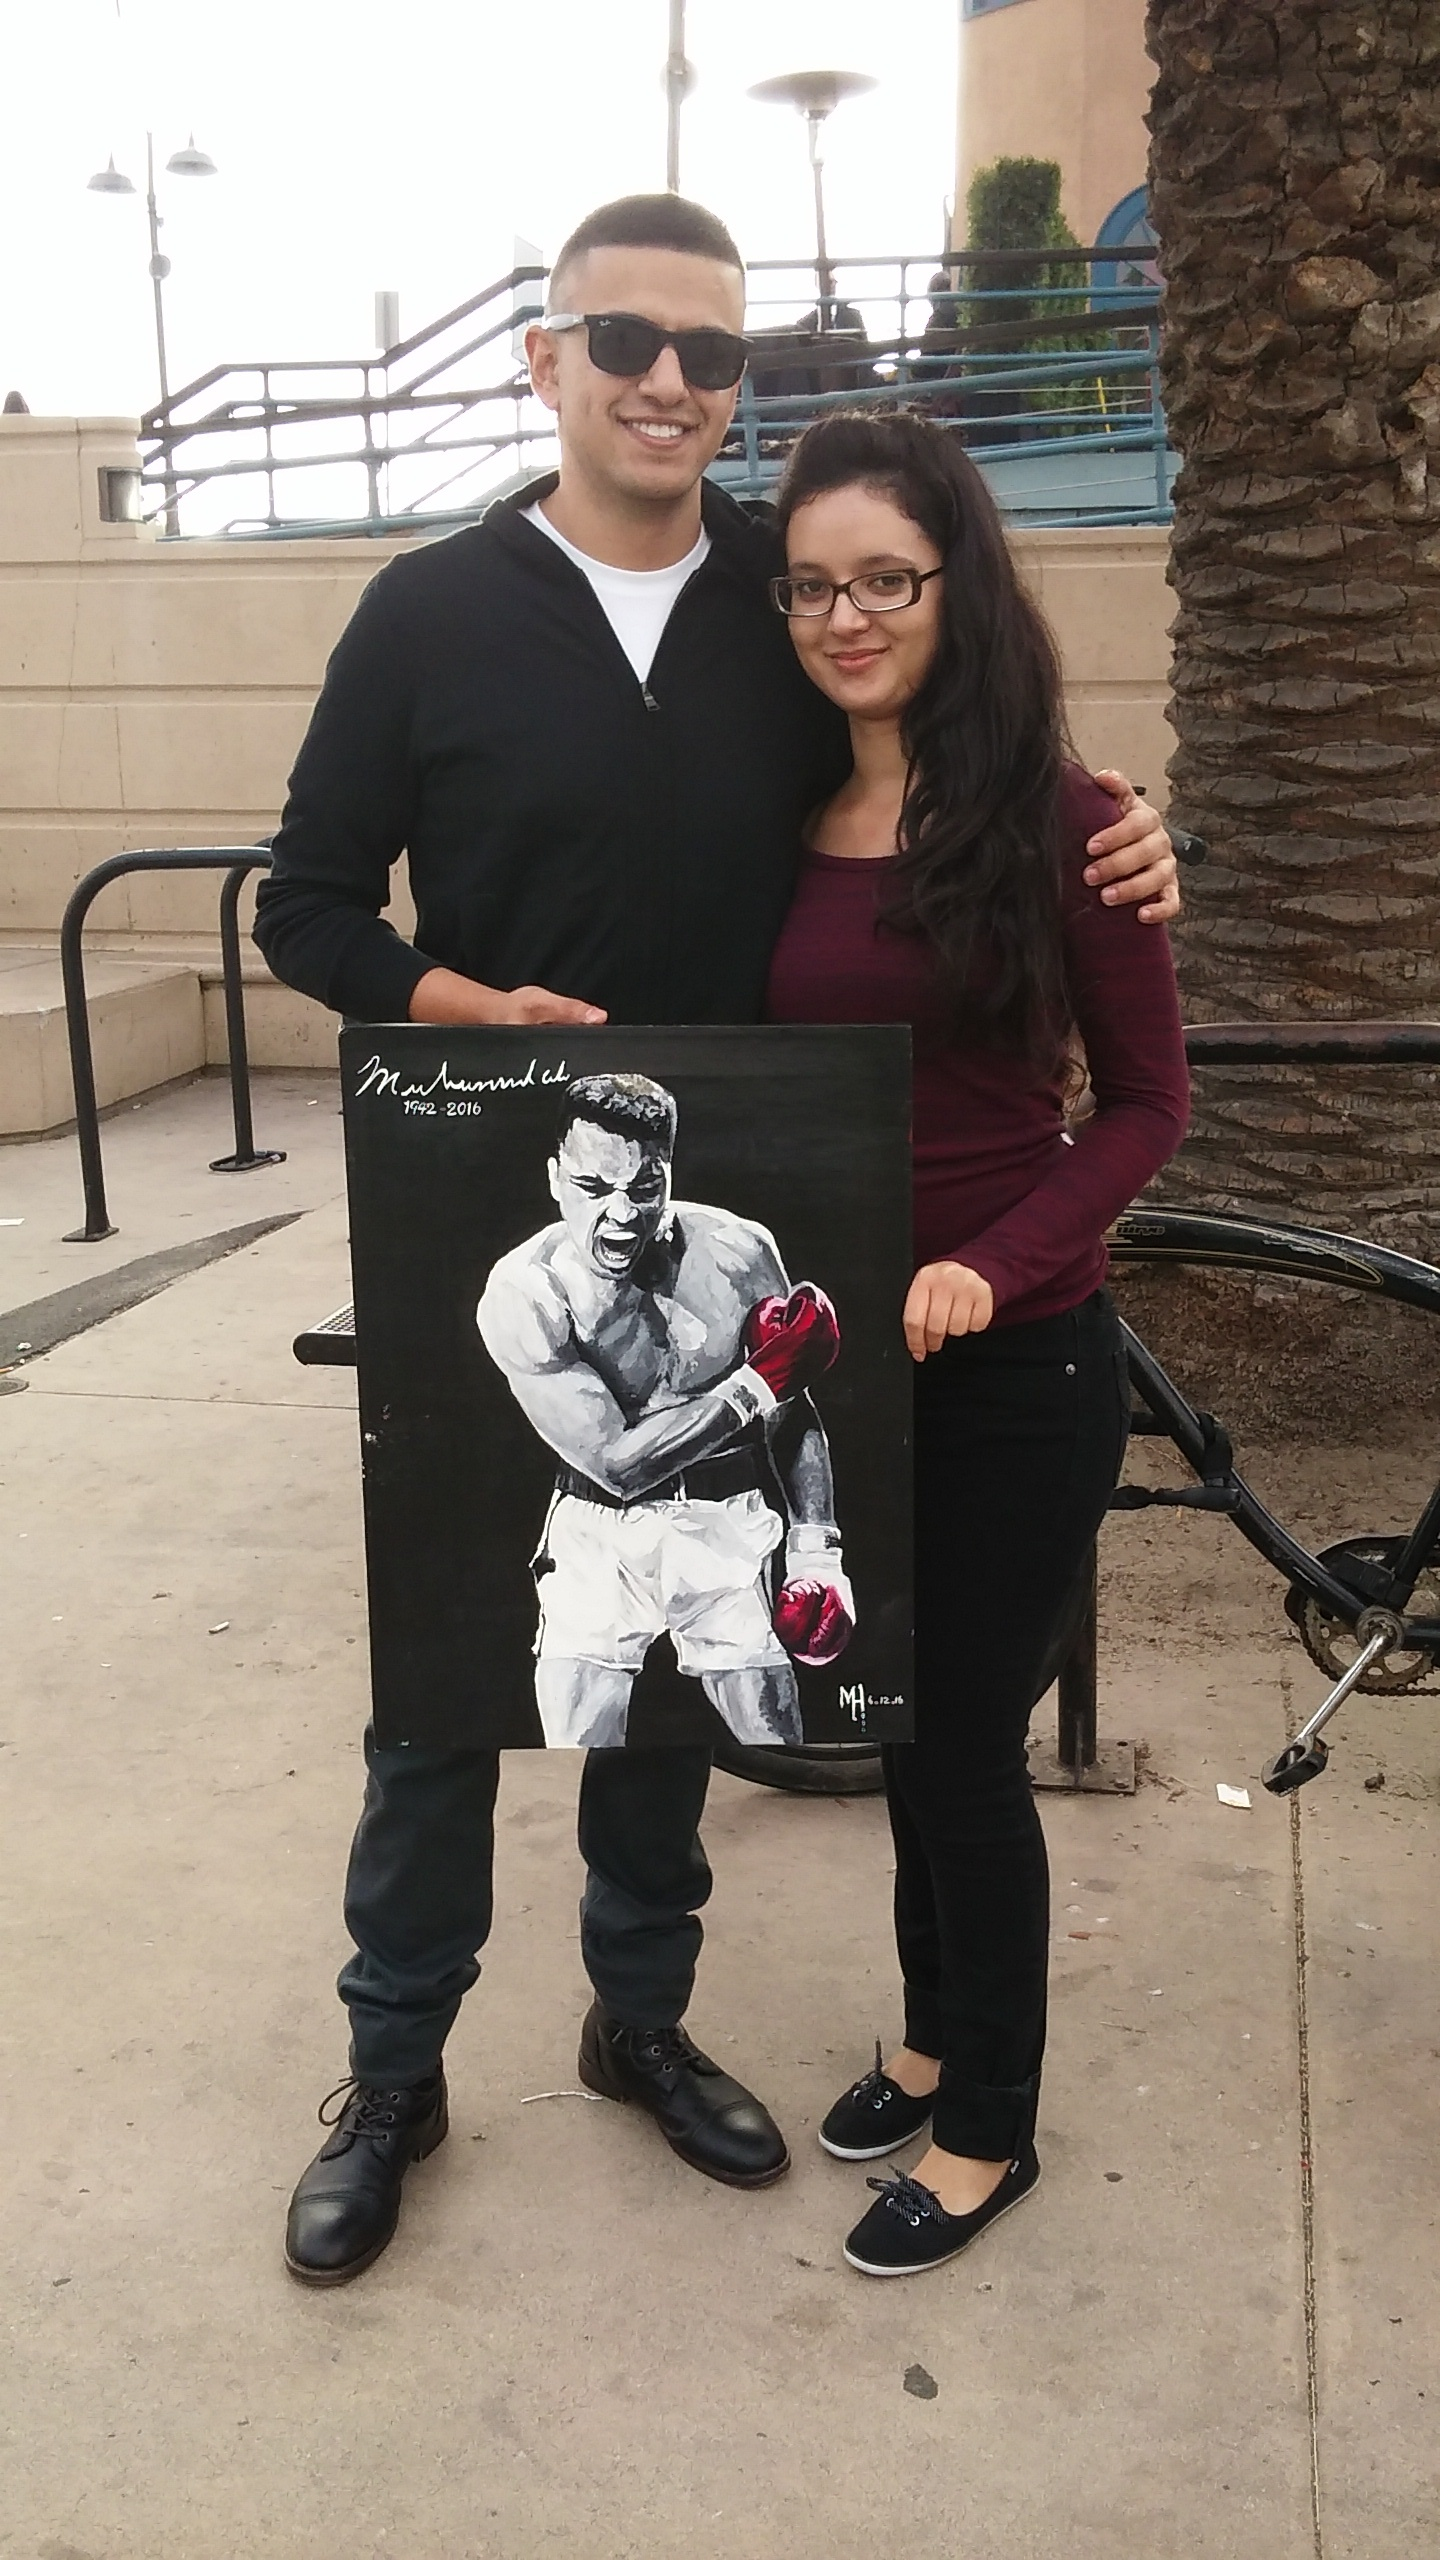 """The World's Greatest Fighter"" feature #MuhammadAli was SOLD to this couple."